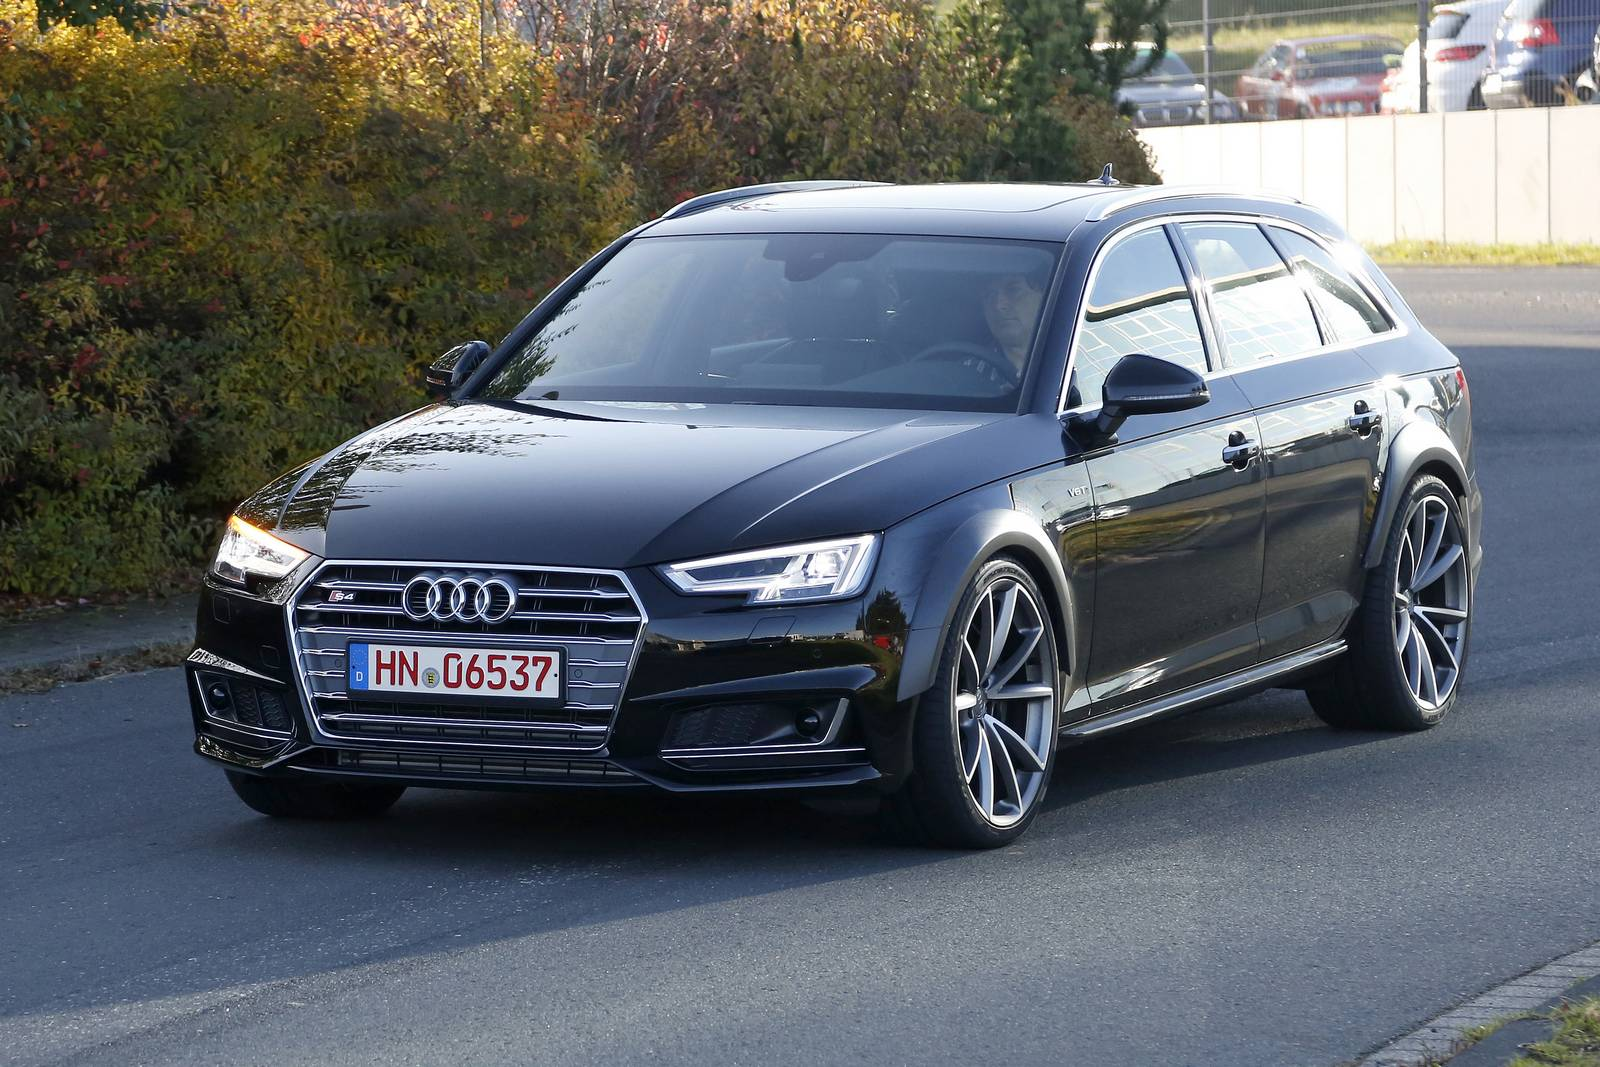 2018 audi rs4 avant test mule spy shots gtspirit. Black Bedroom Furniture Sets. Home Design Ideas